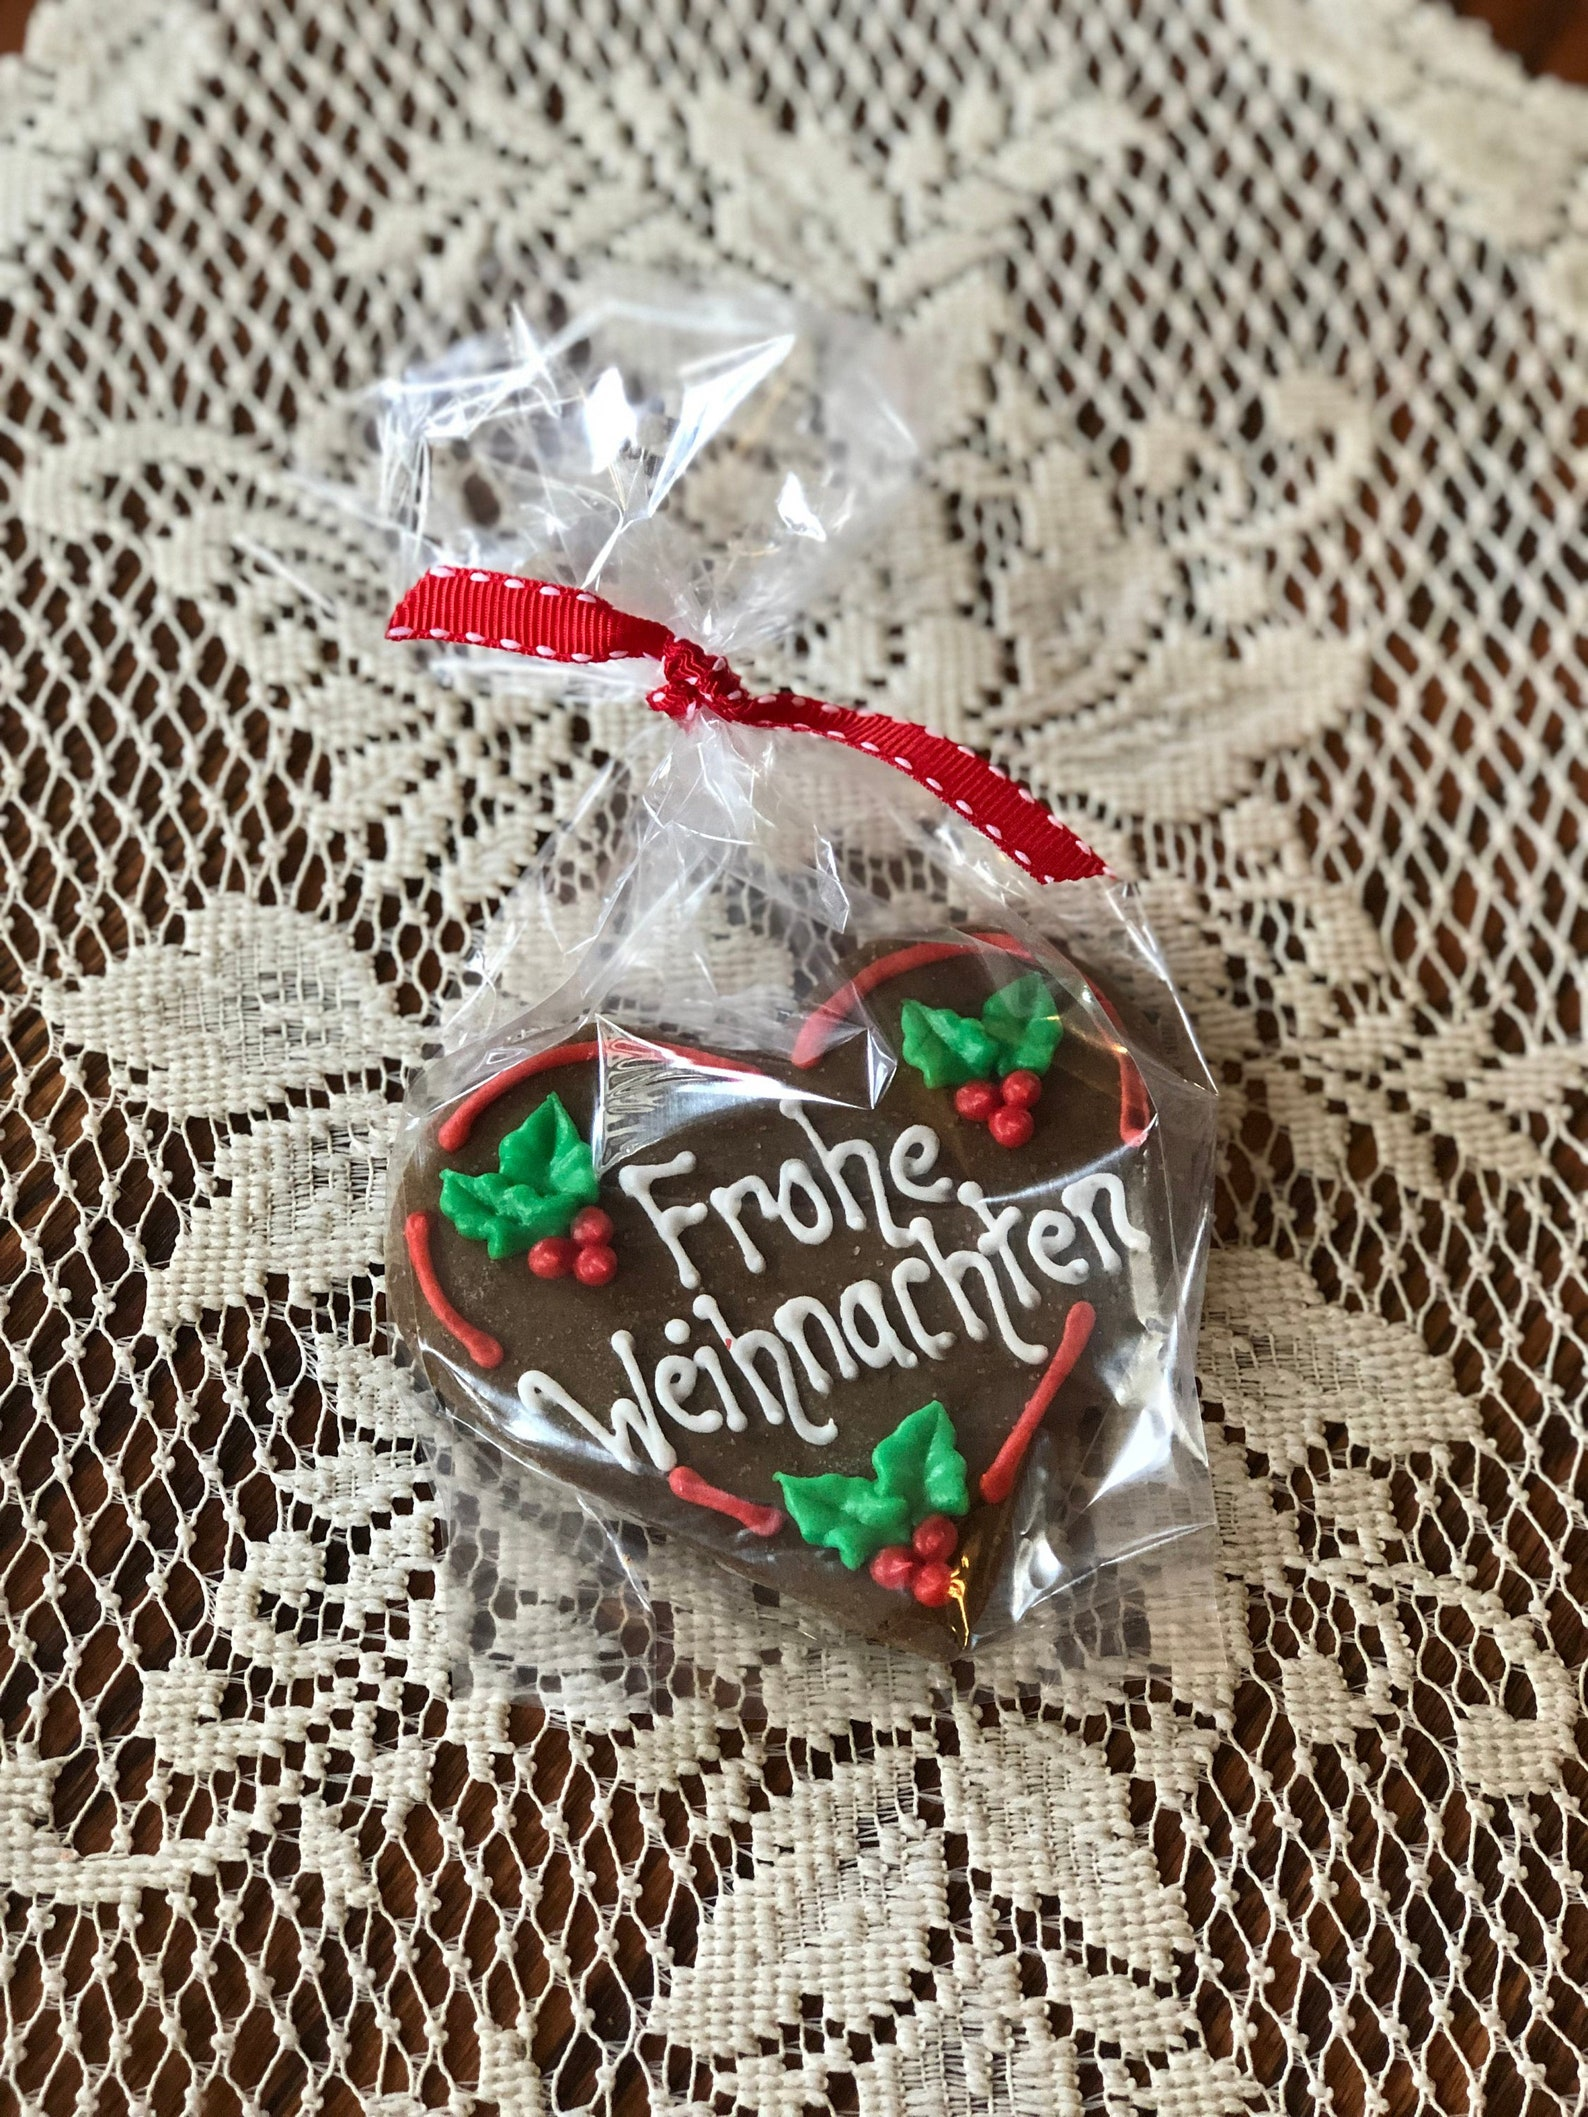 German Sentiment Heart Gingerbread Cookies- (1 per order)